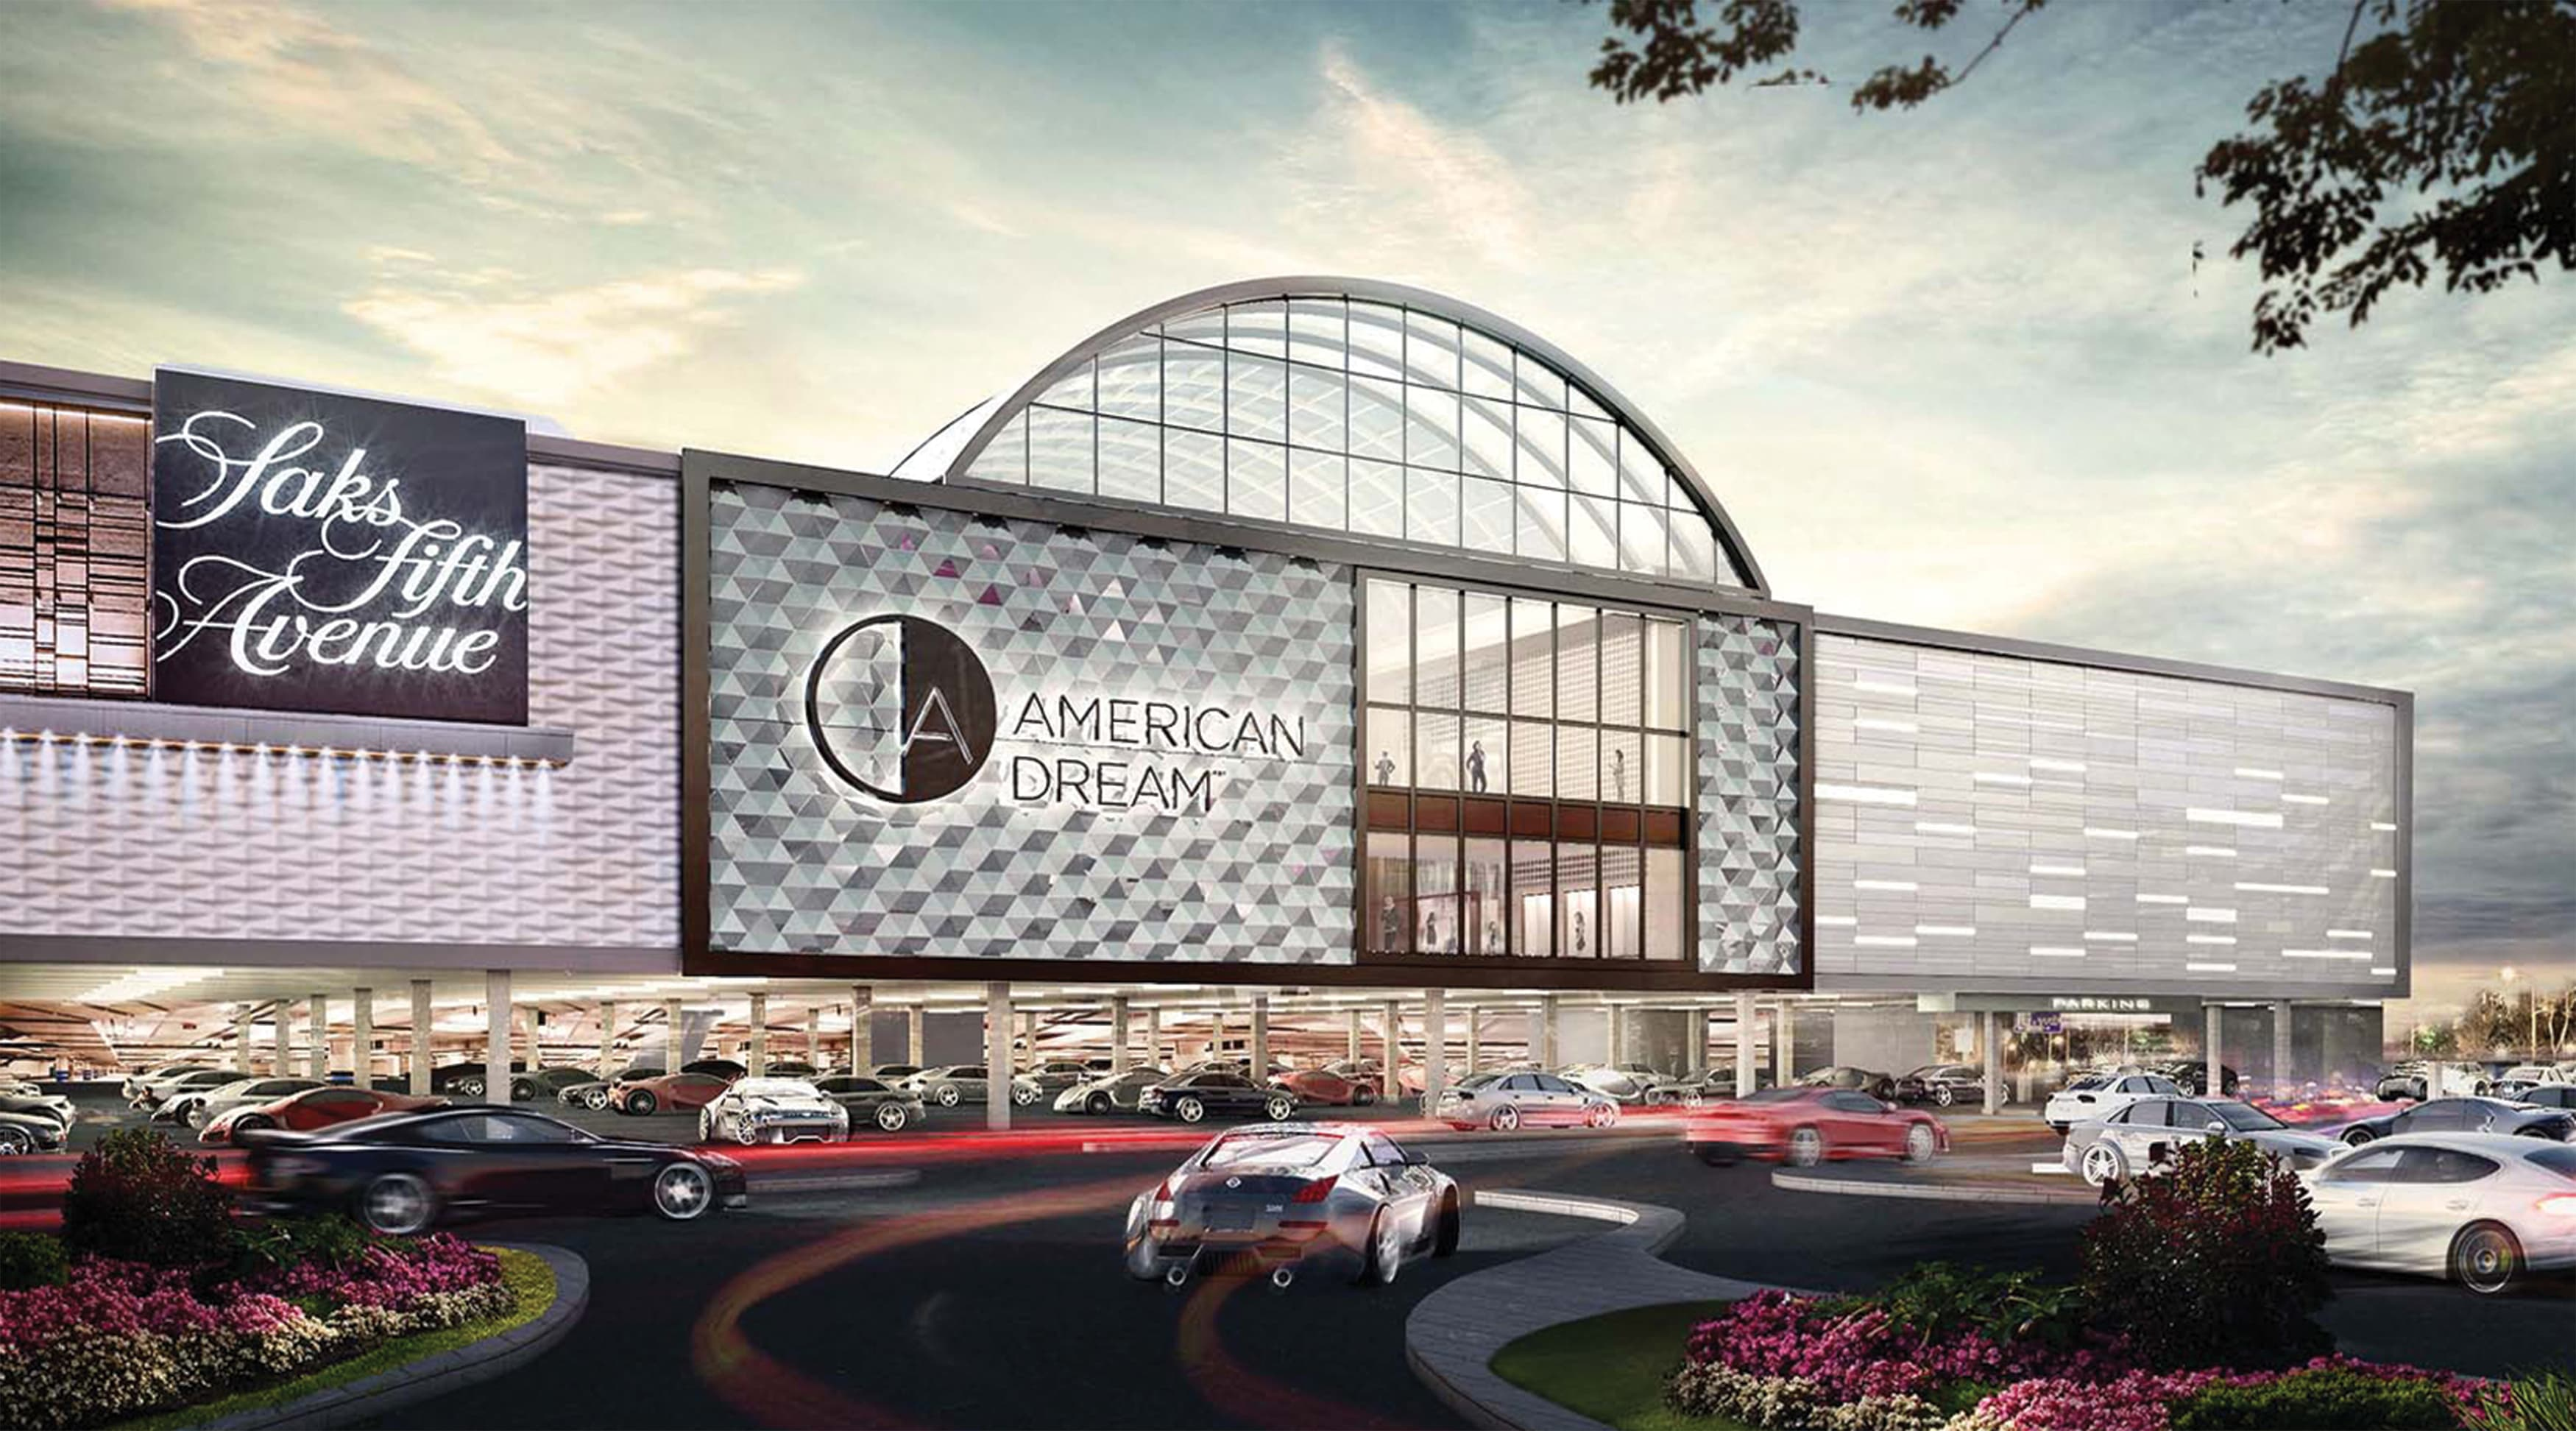 American Dream Retail Project Design in East Rutherford, New Jersey. Architectural Rendering and Architectural Facade Project Identity